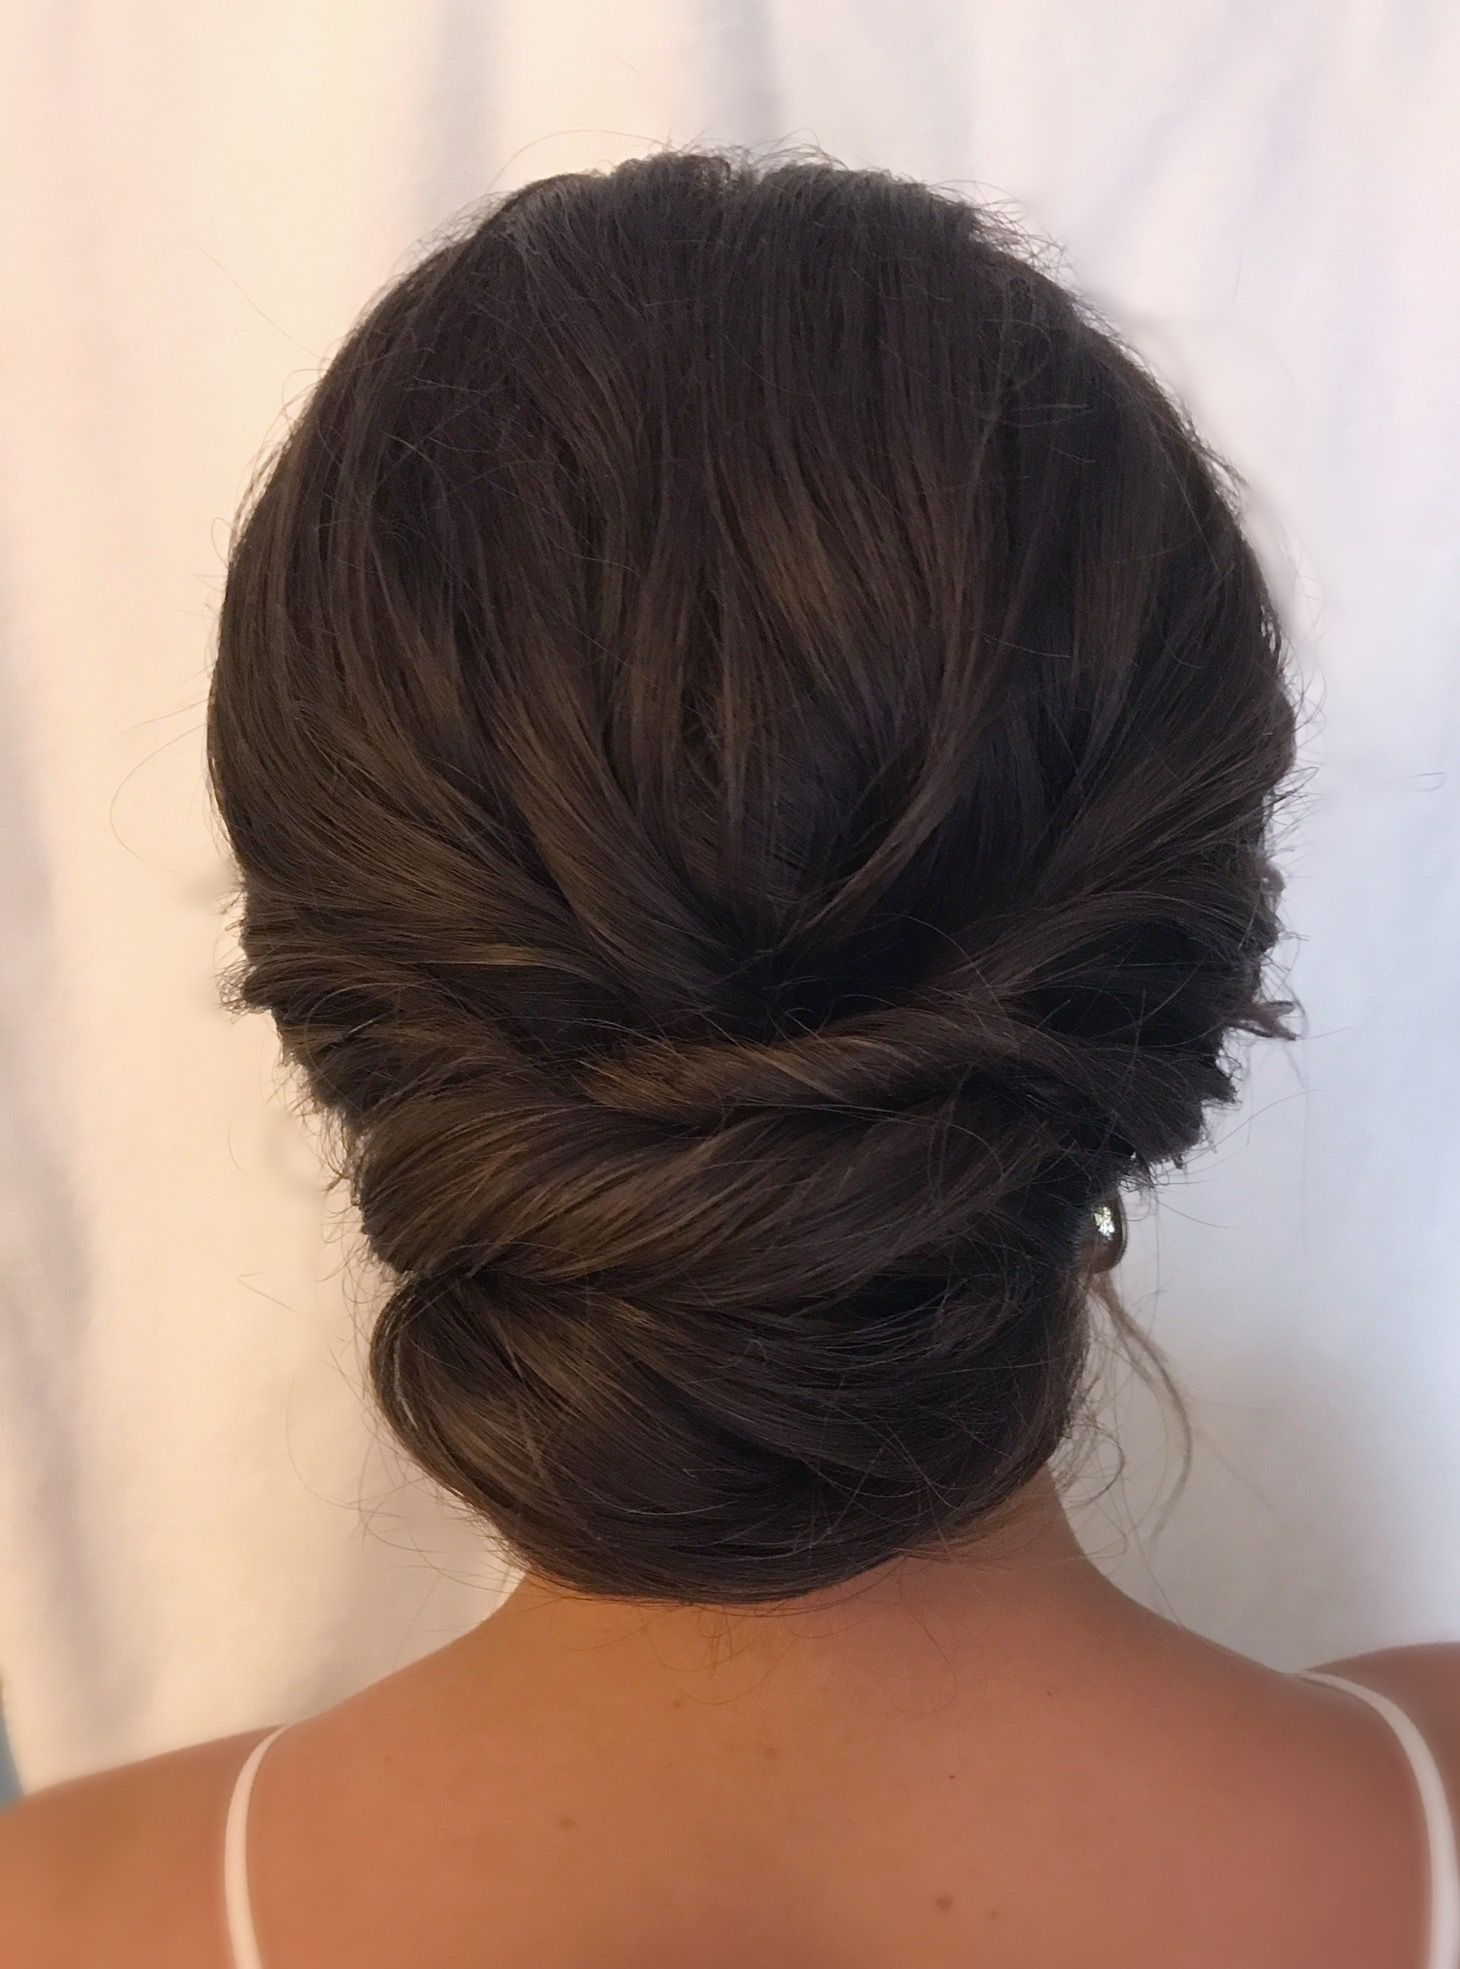 textured updo by @shelbywhite_hmu | hair, there, everywhere